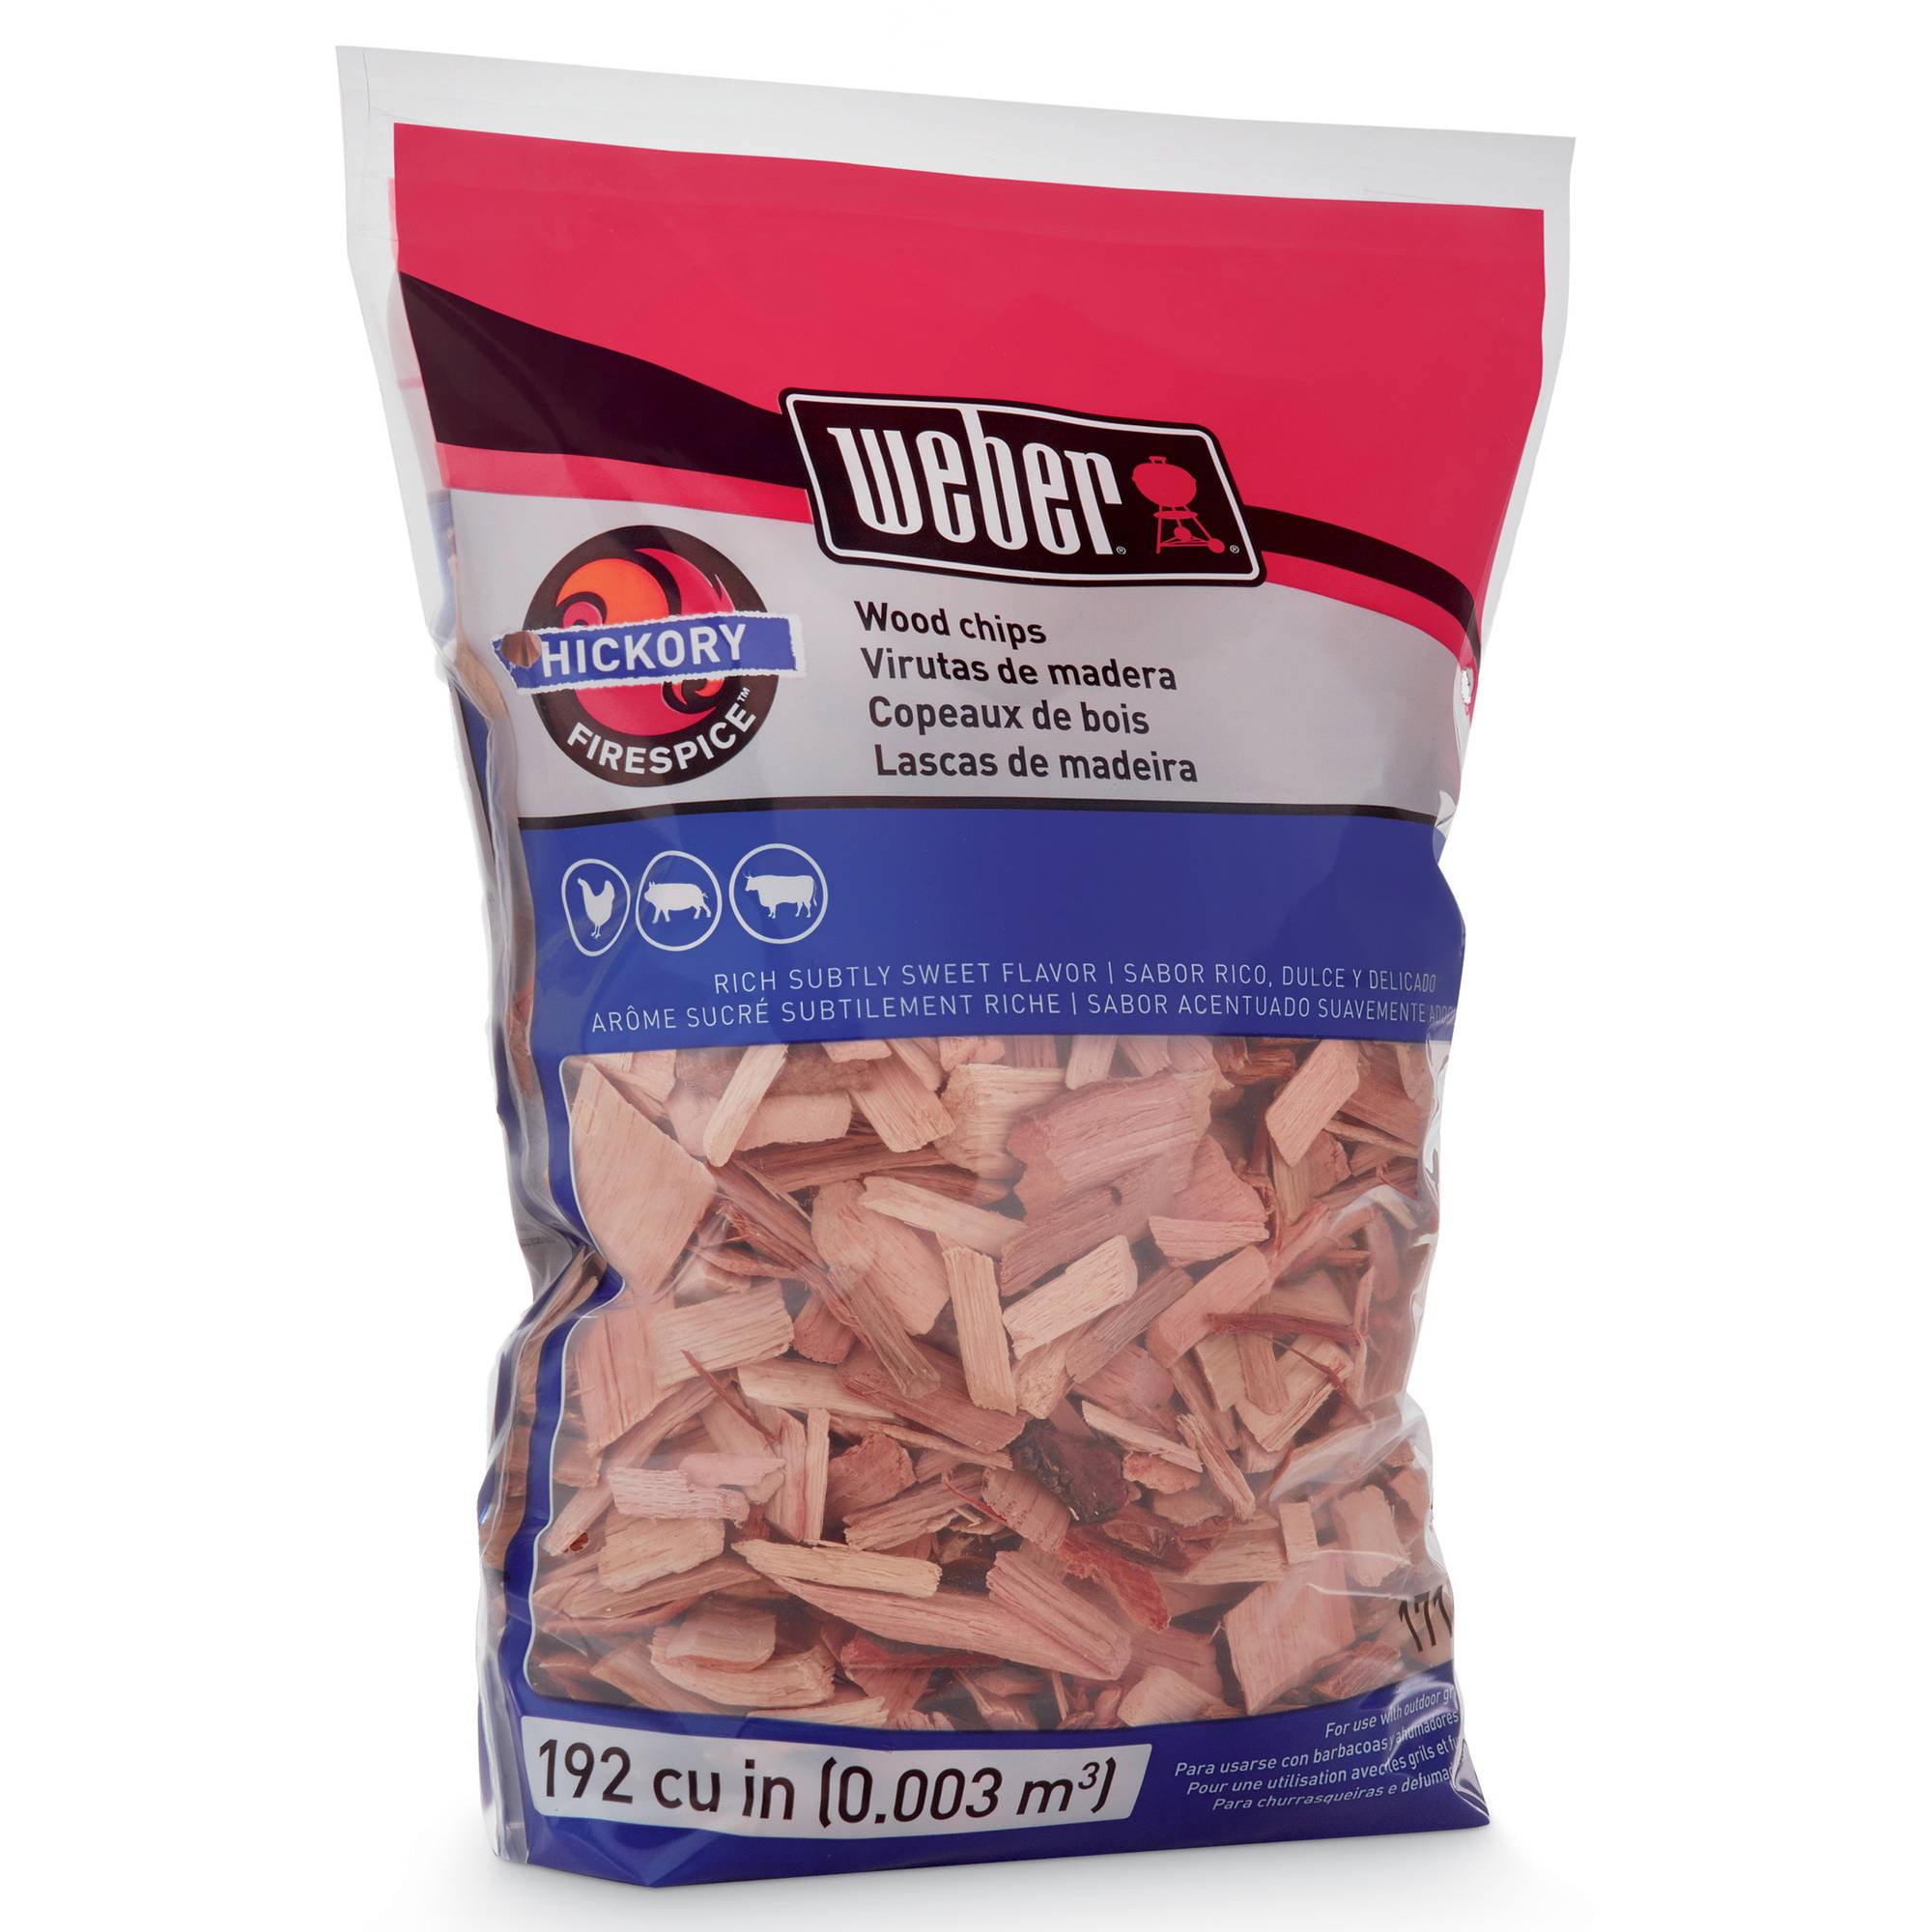 HICKORY WOOD CHIPS Barbeque Wood Flavors Wood Smoking Chips 192 CUBIC INCH